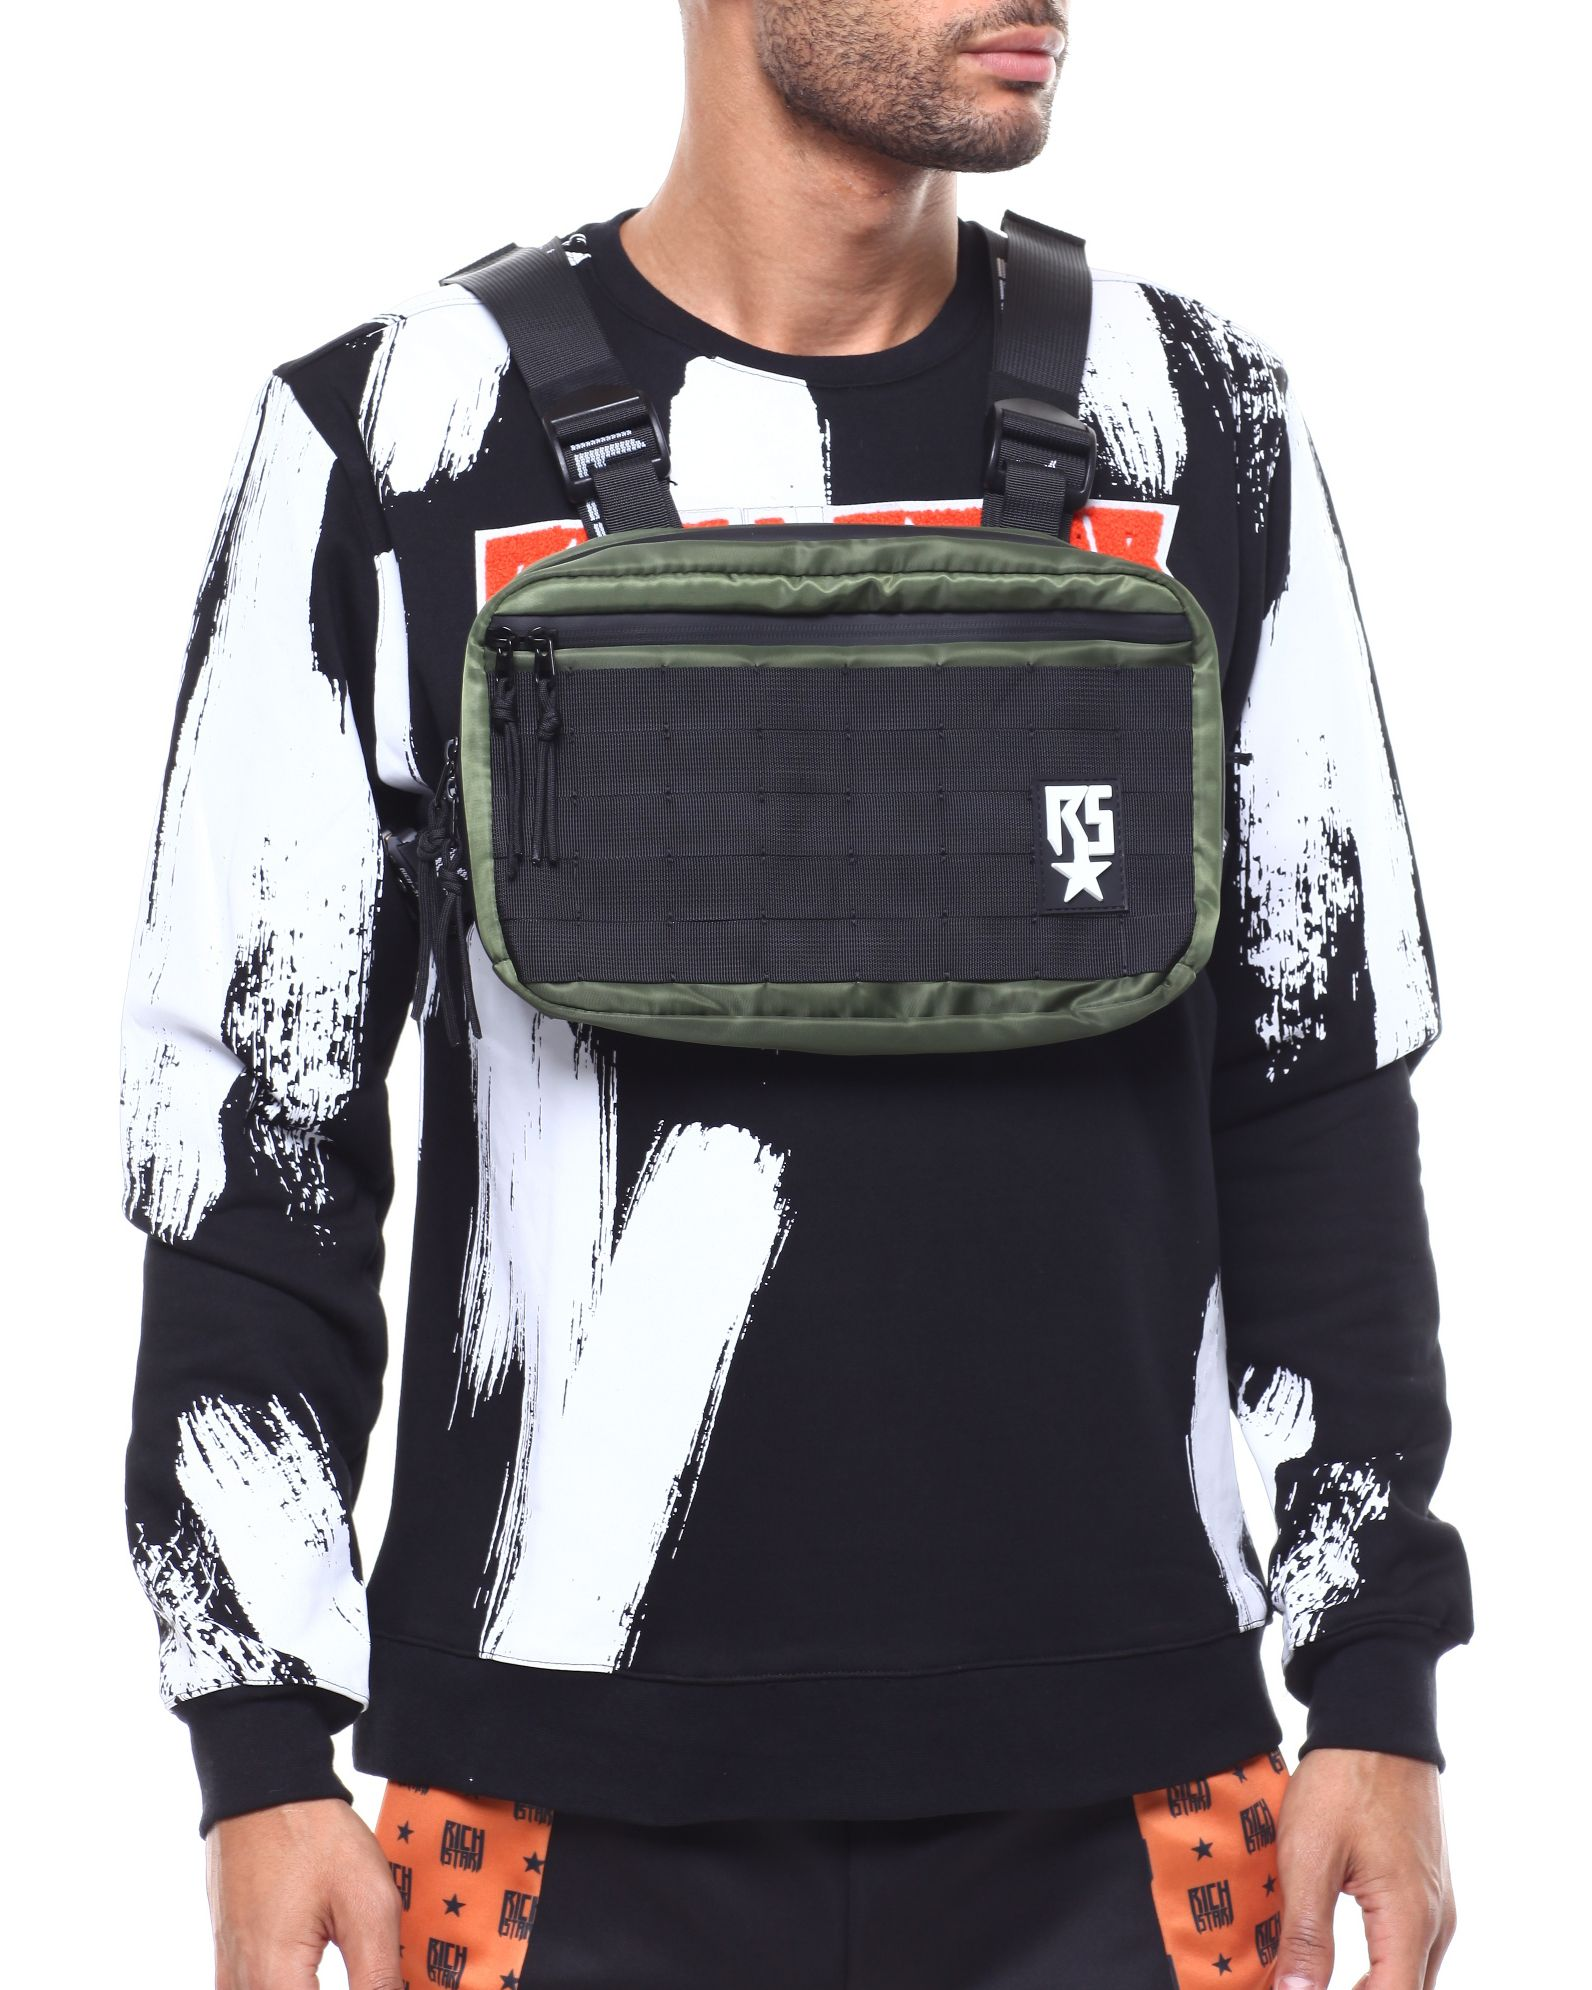 Backpacks Hip-hop Kanye West Street Ins Hot Style Chest Rig Military Tactical Chest Bag Functional Package Prechest Bag Vest Bag Lovers Cheapest Price From Our Site